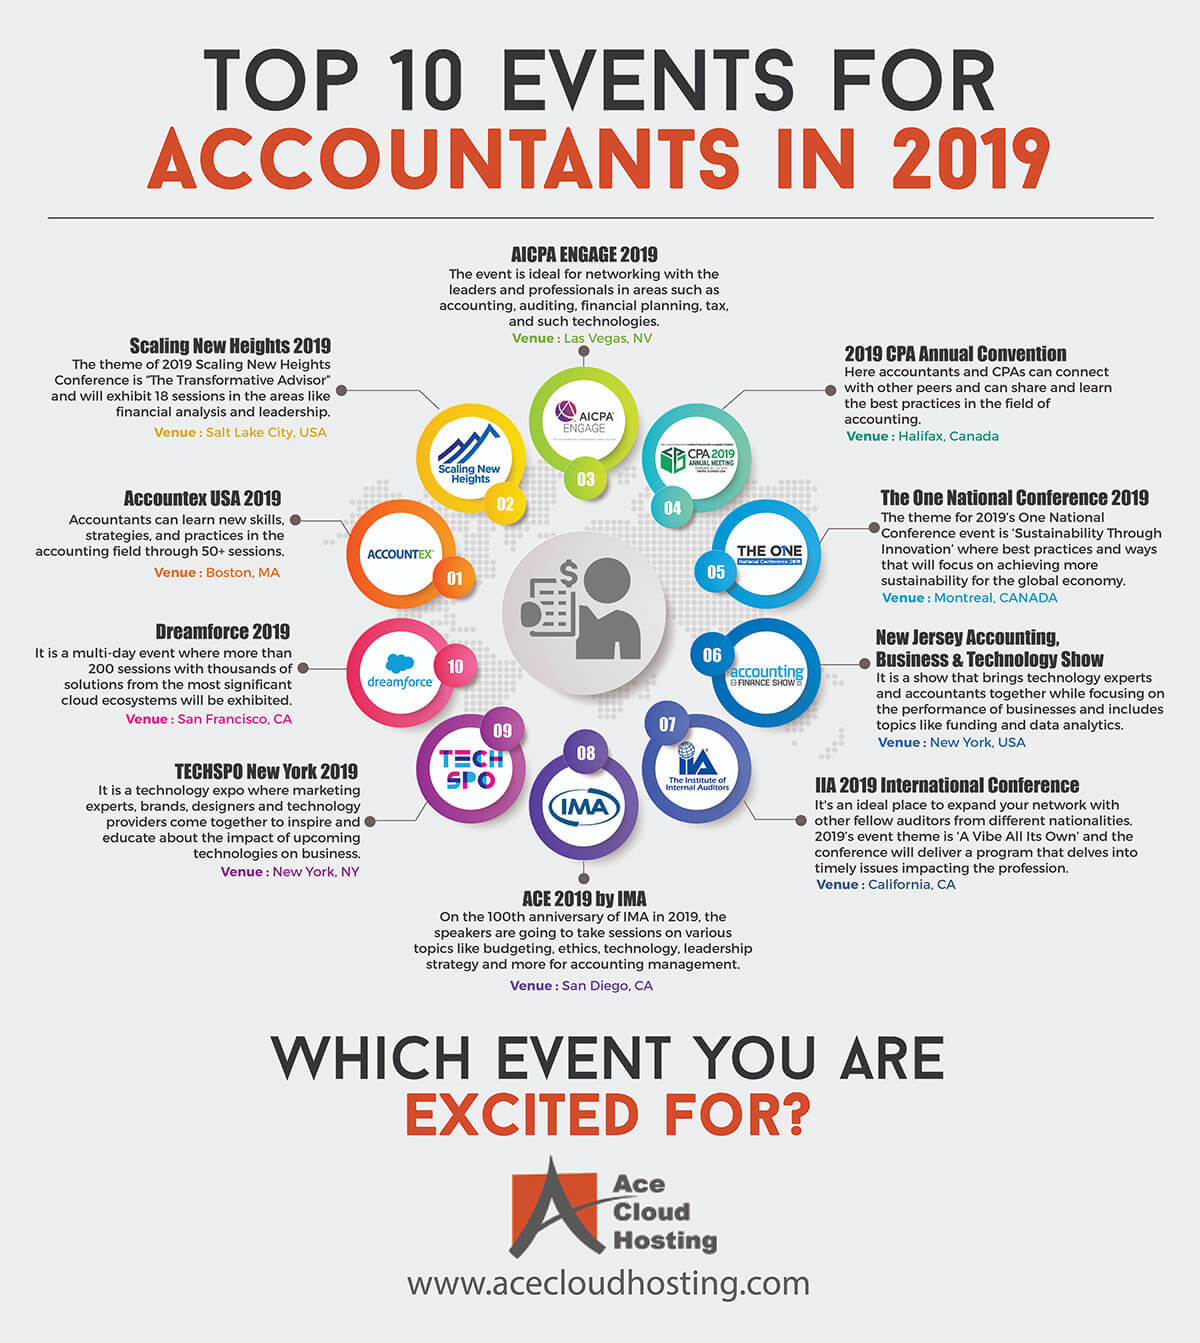 Events that Accountants Can't Afford to Miss in 2019 Infographic